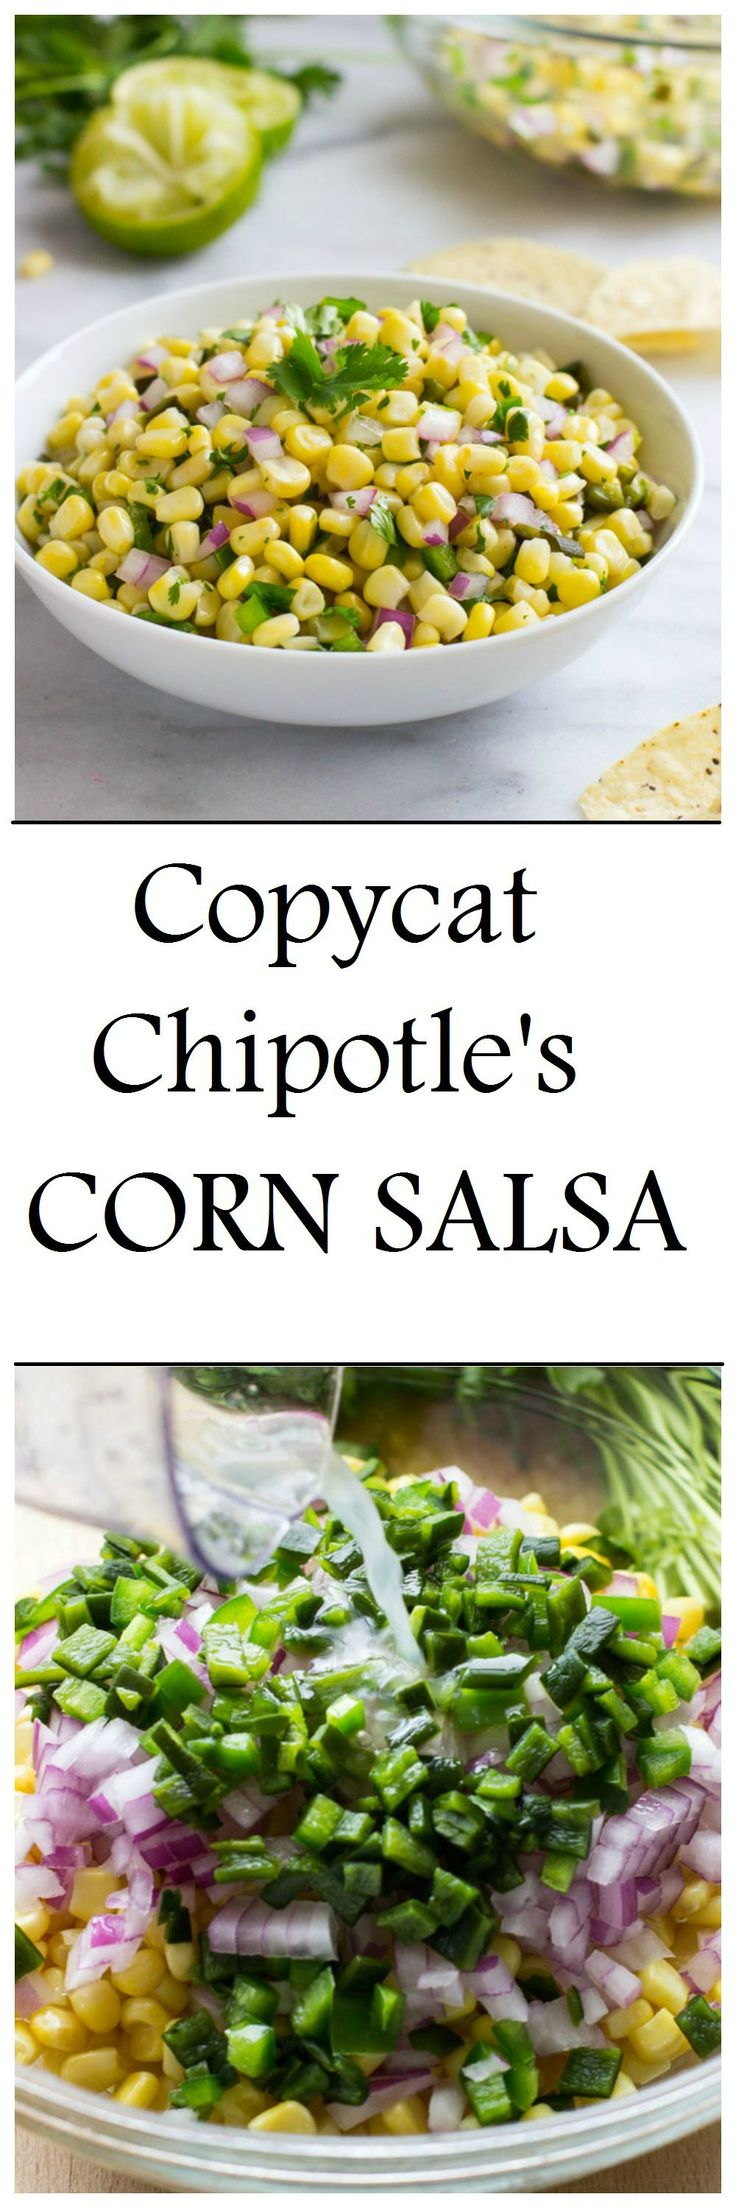 Copycat Chipotle's Corn Salsa- two key ingredients give this salsa it's irresistible flavor! - Serve with fish